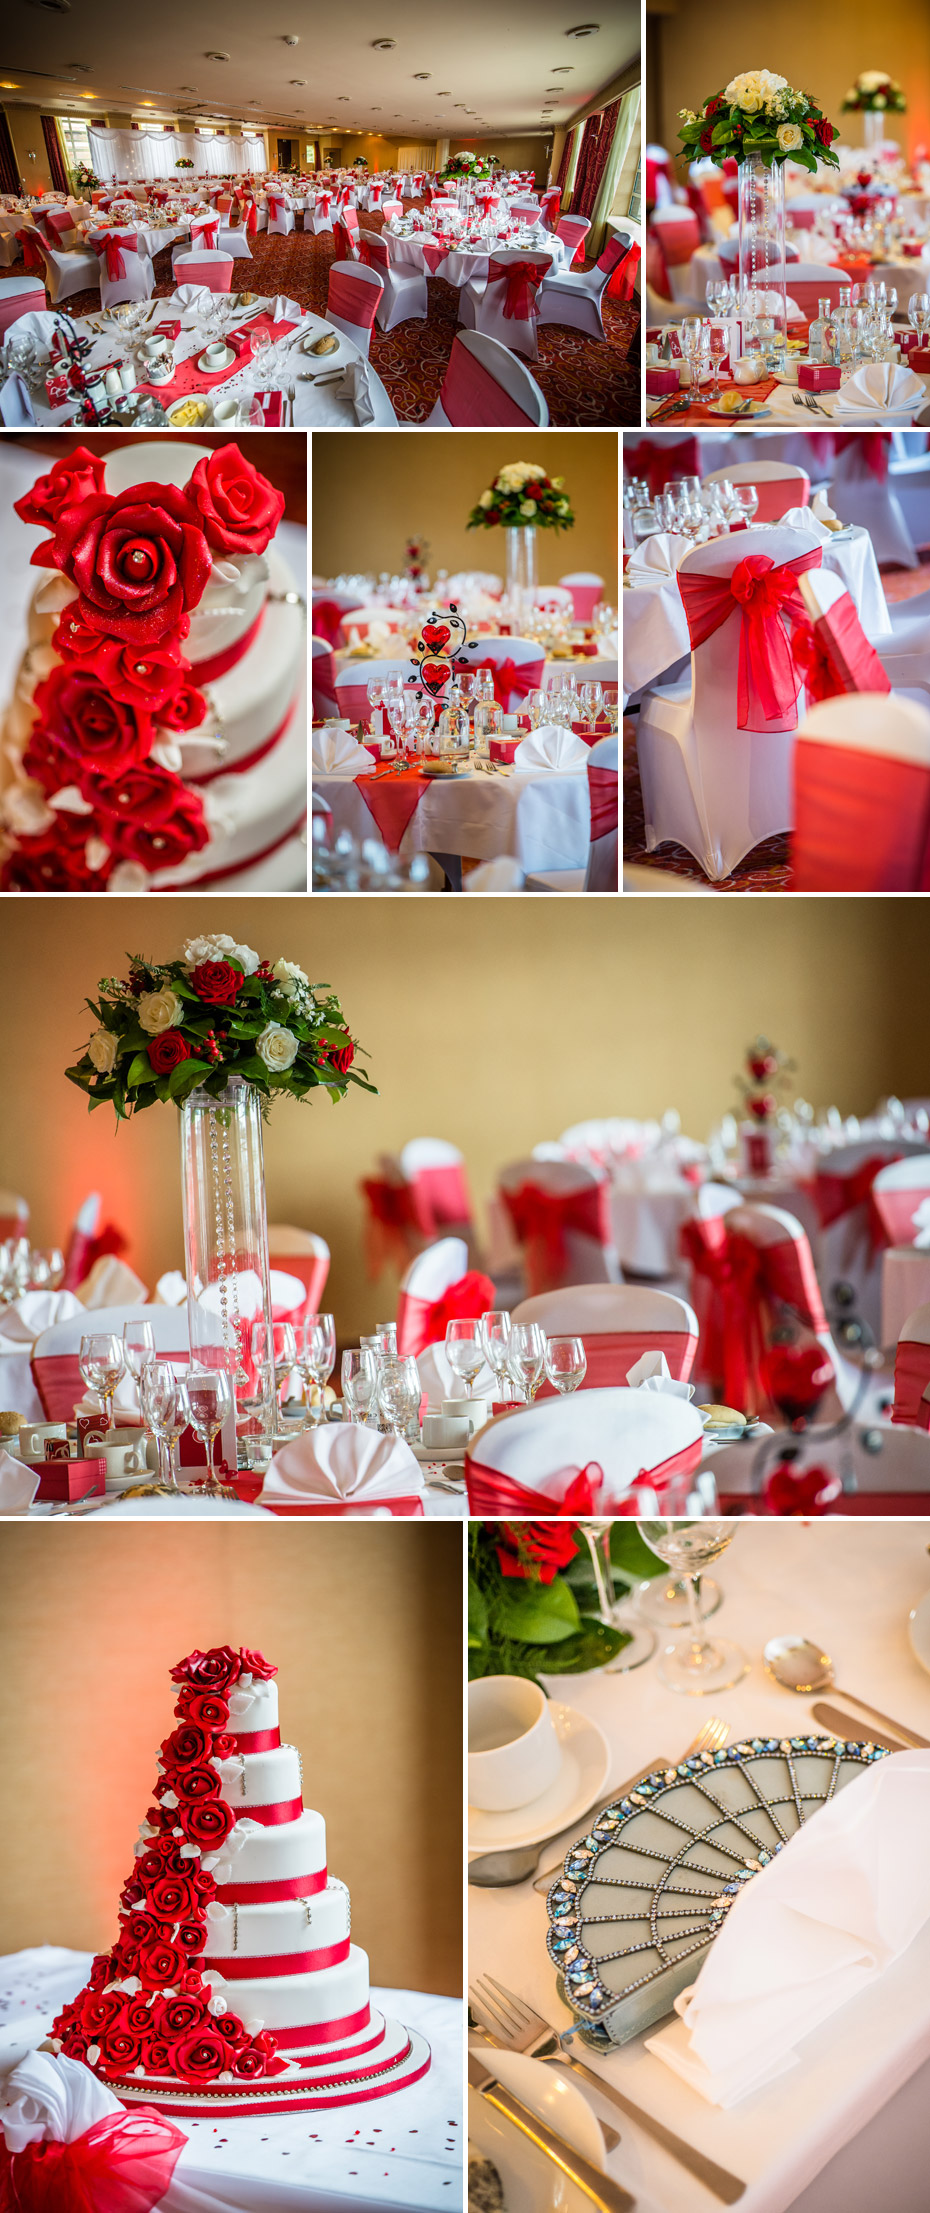 wedding-photographs-crowne-plaza-speke-liverpool-010